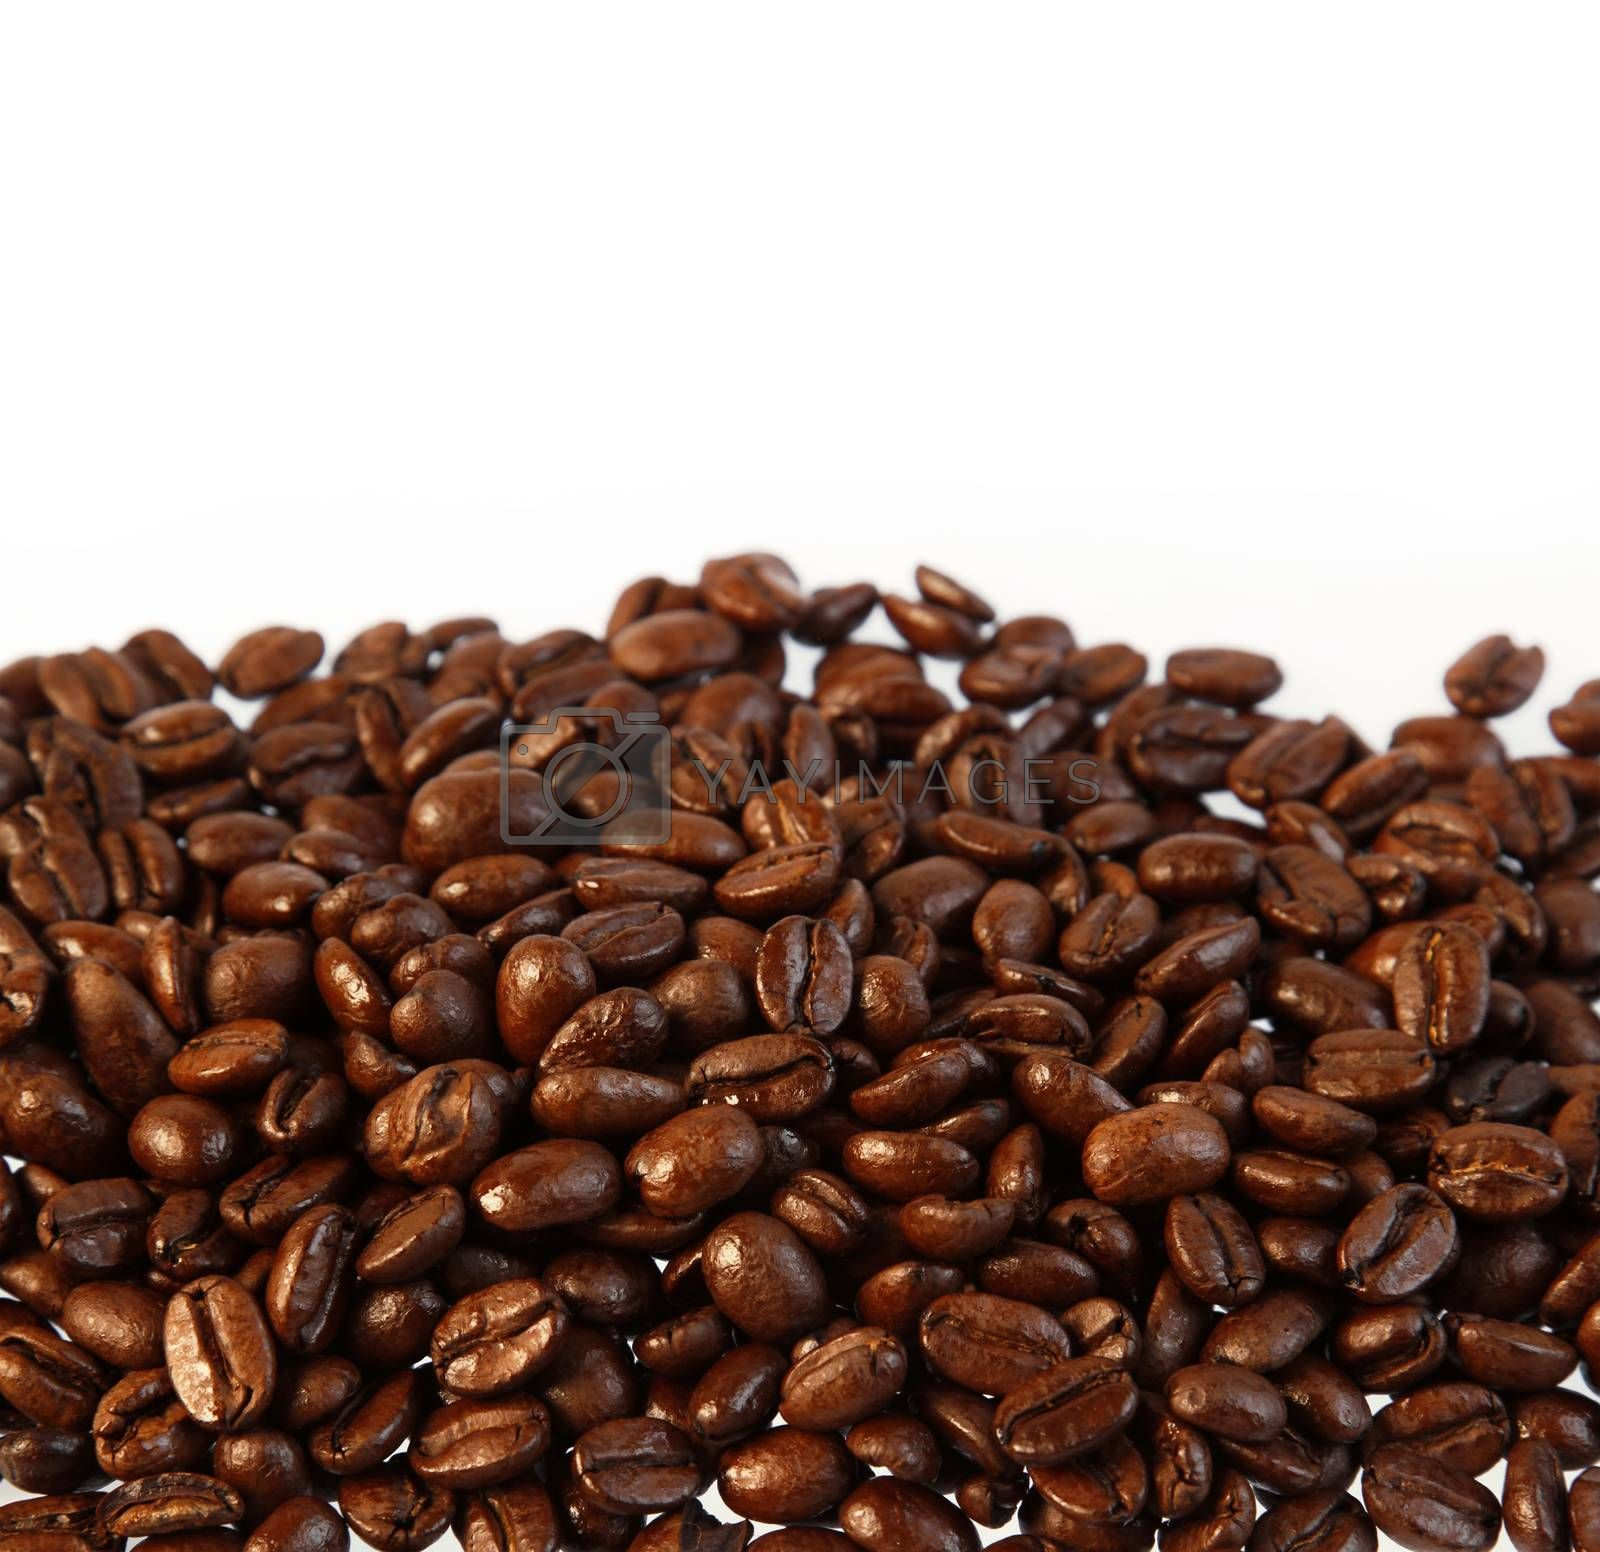 Closeup of coffee beans on plain background. Copy space